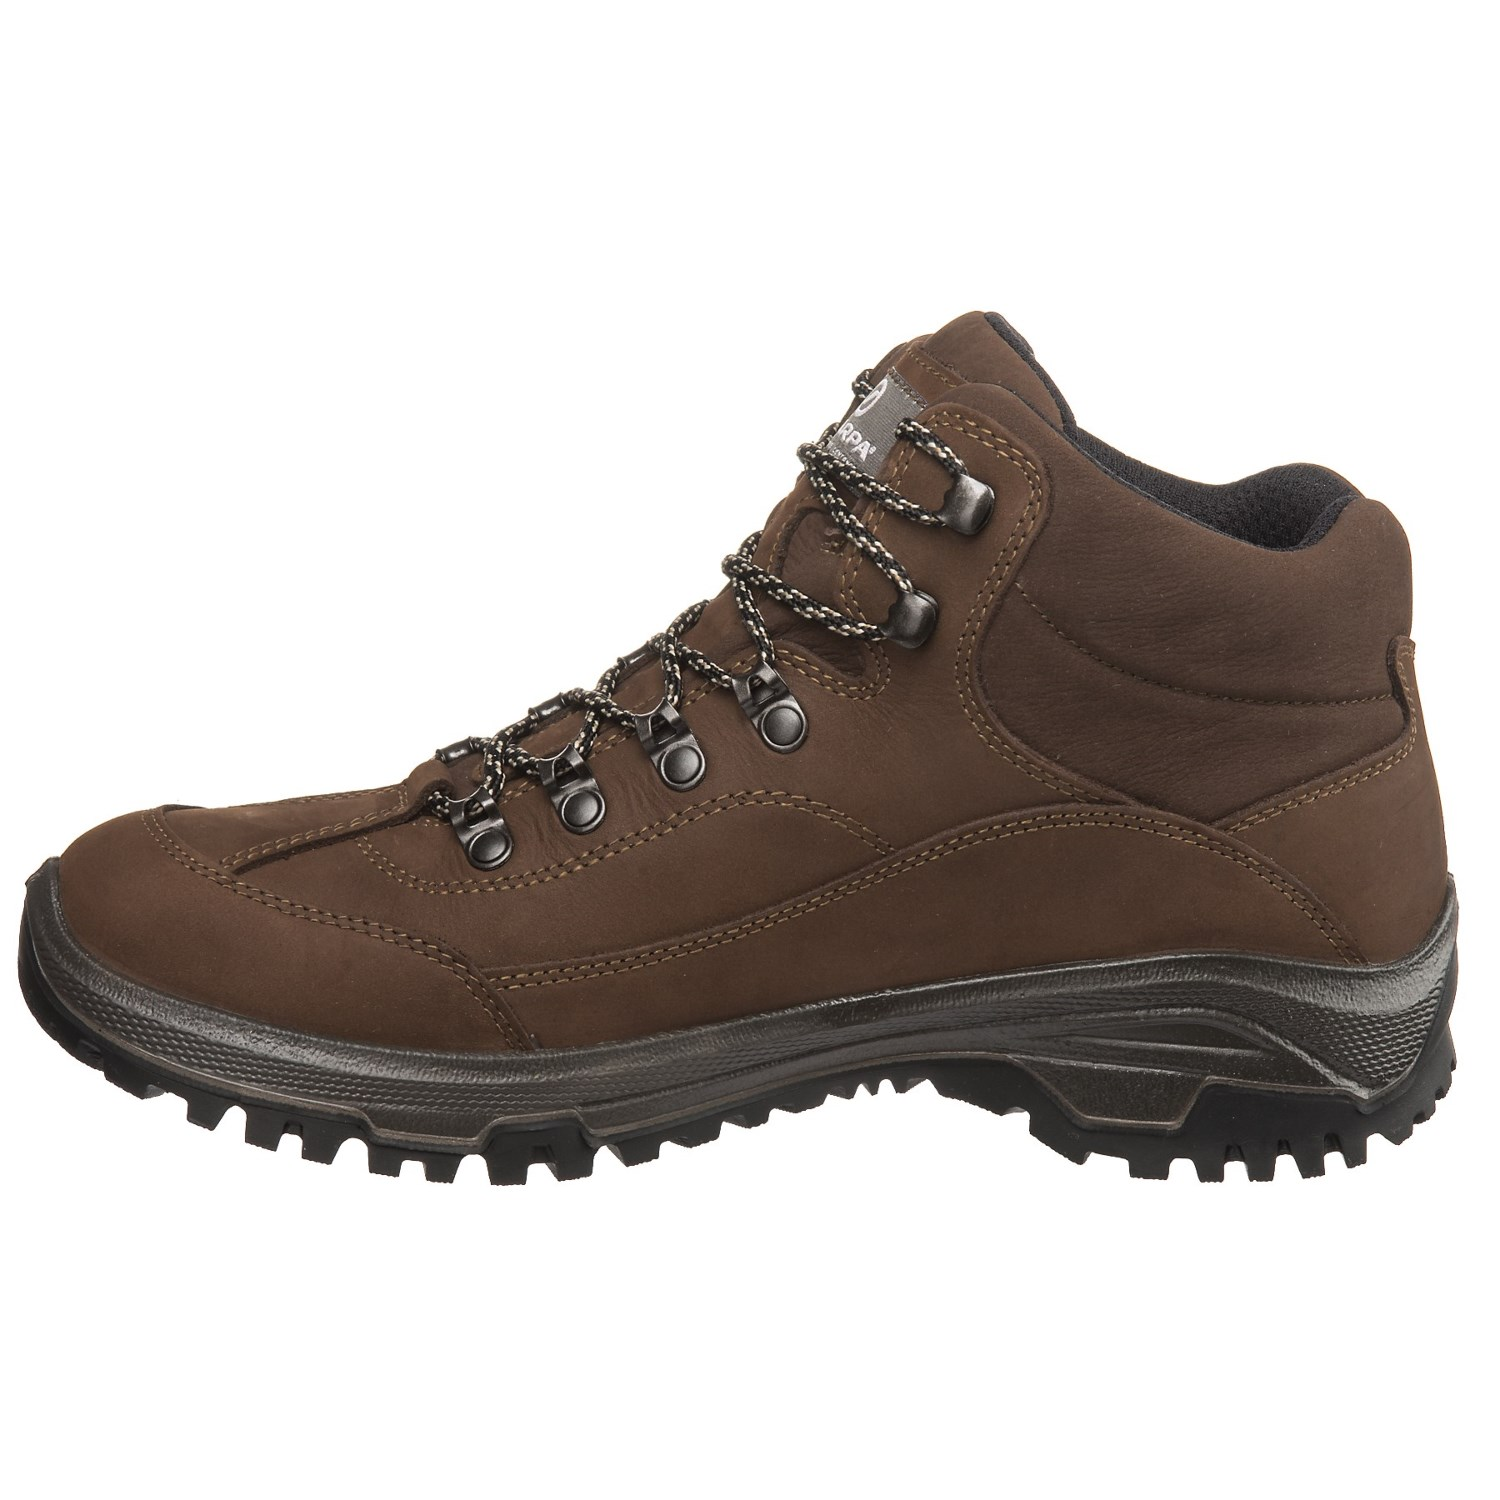 176a670731 Scarpa Cyrus Mid Gore-Tex® Hiking Boots - Waterproof (For Men)